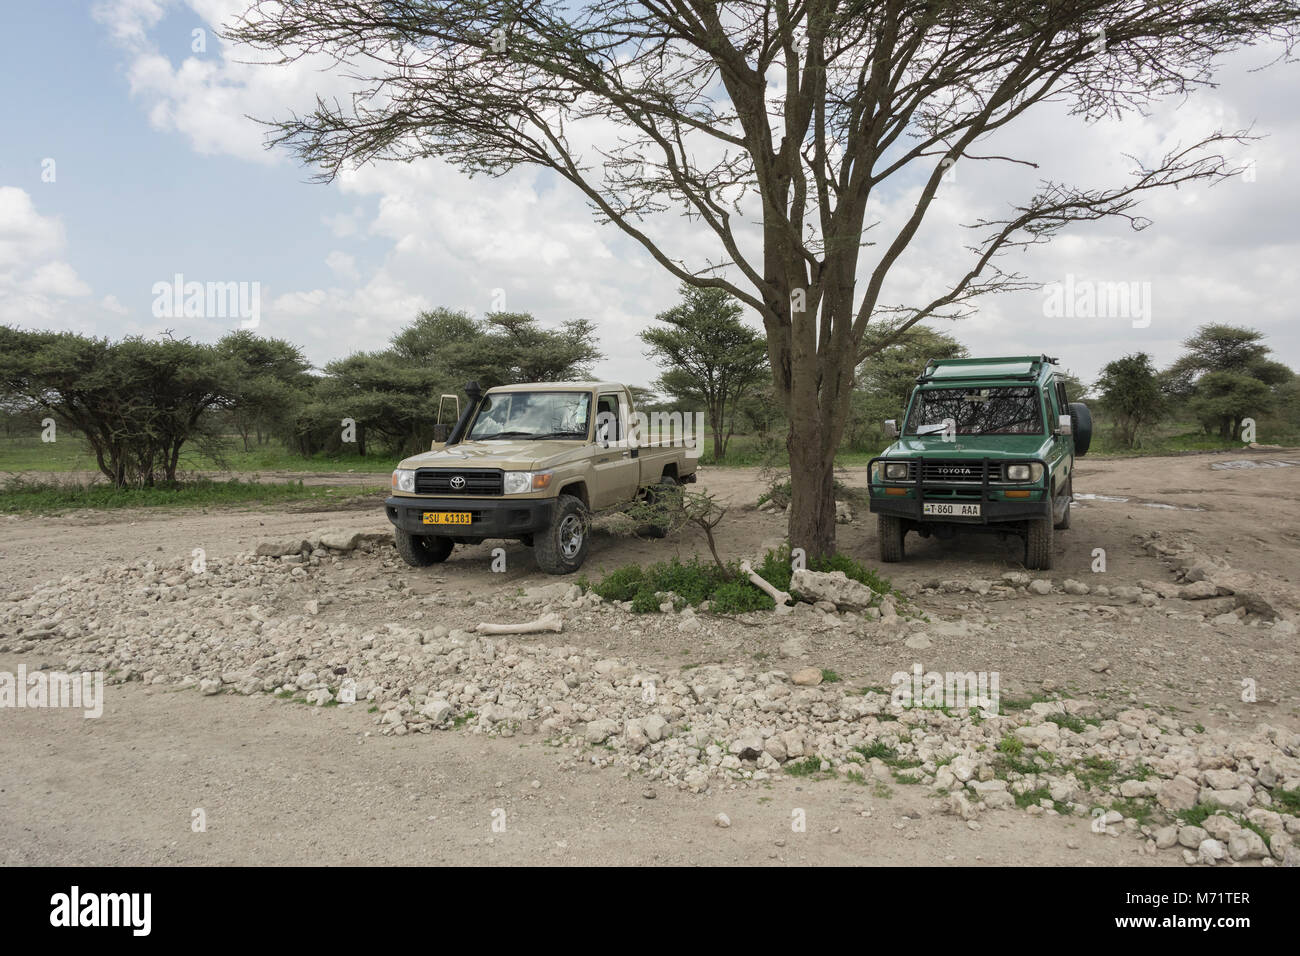 Airport parking stock photos airport parking stock images alamy airport parking with elephant bones sasakawa airstrip serengeti tanzania stock image kristyandbryce Image collections